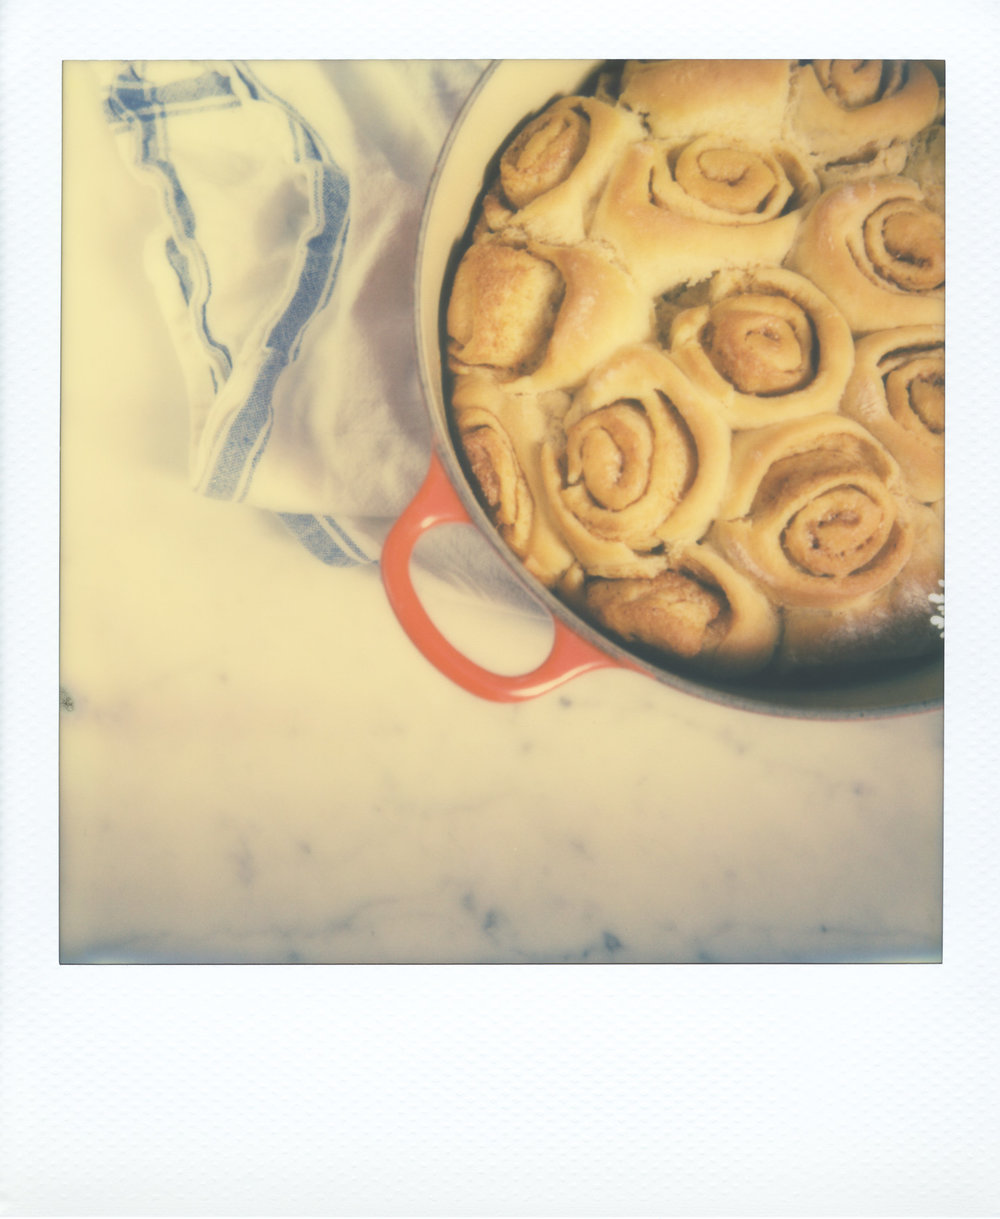 Atlanta-Amsterdam-Treats-Polaroid-Impossible-Project-by-On-a-hazy-morning-5.jpg